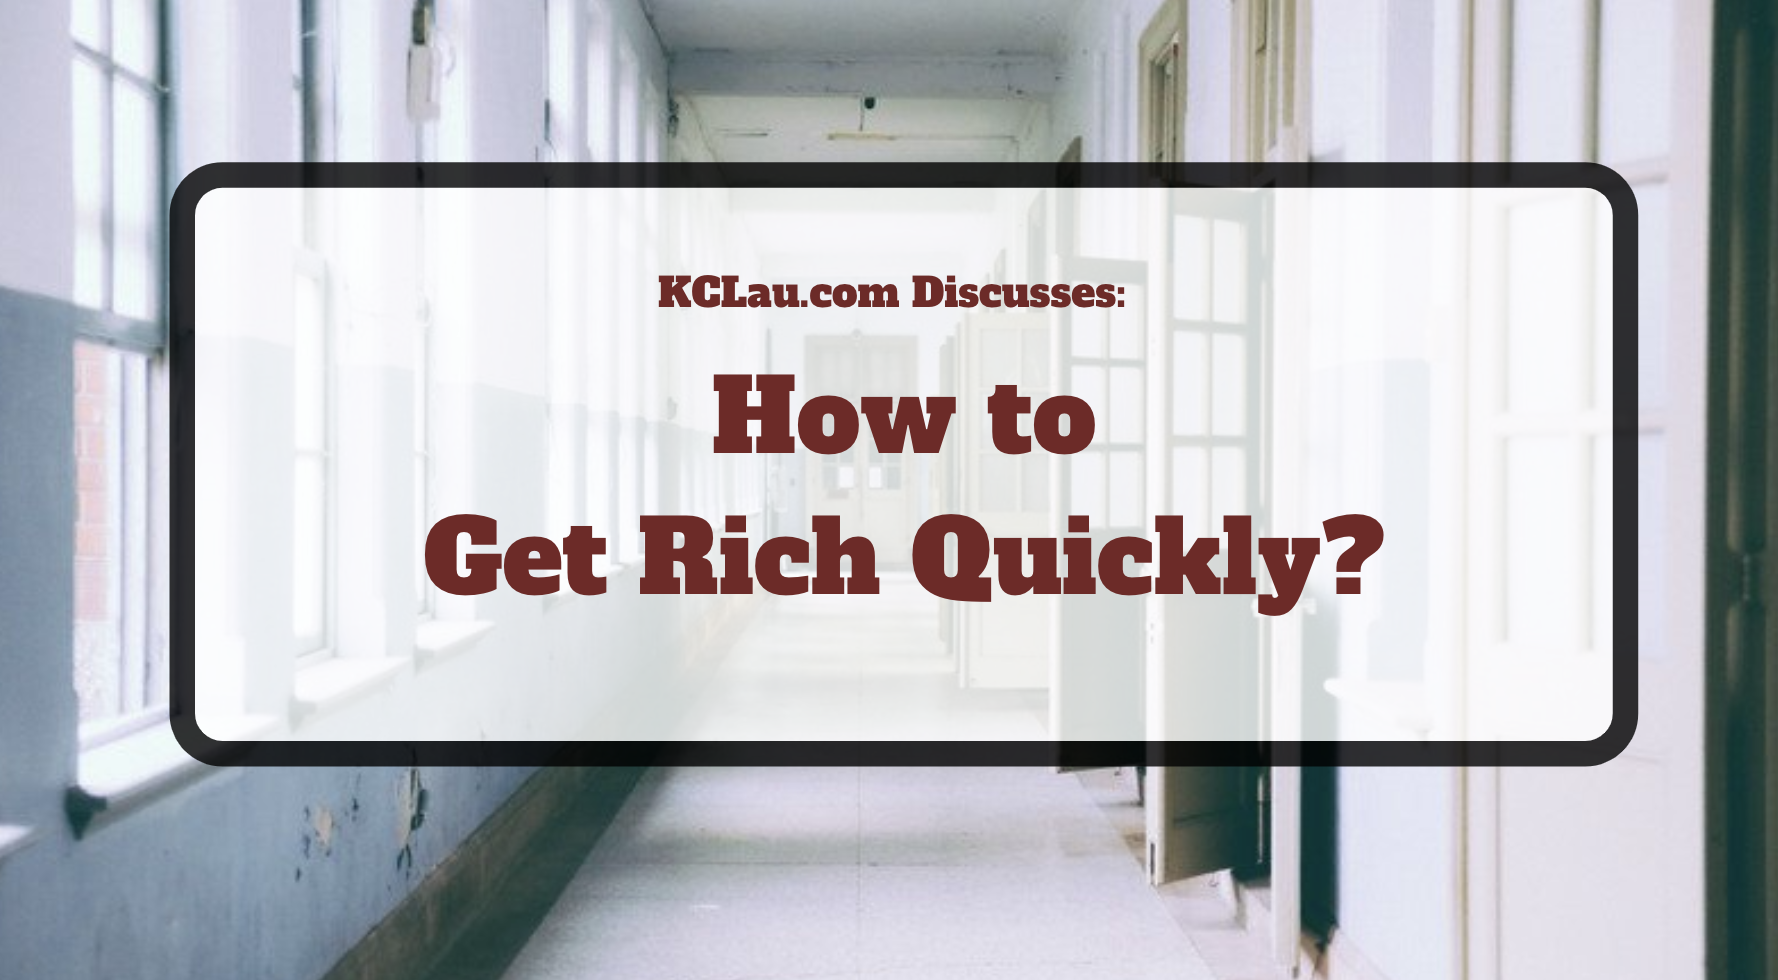 How to Get Rich Quickly?